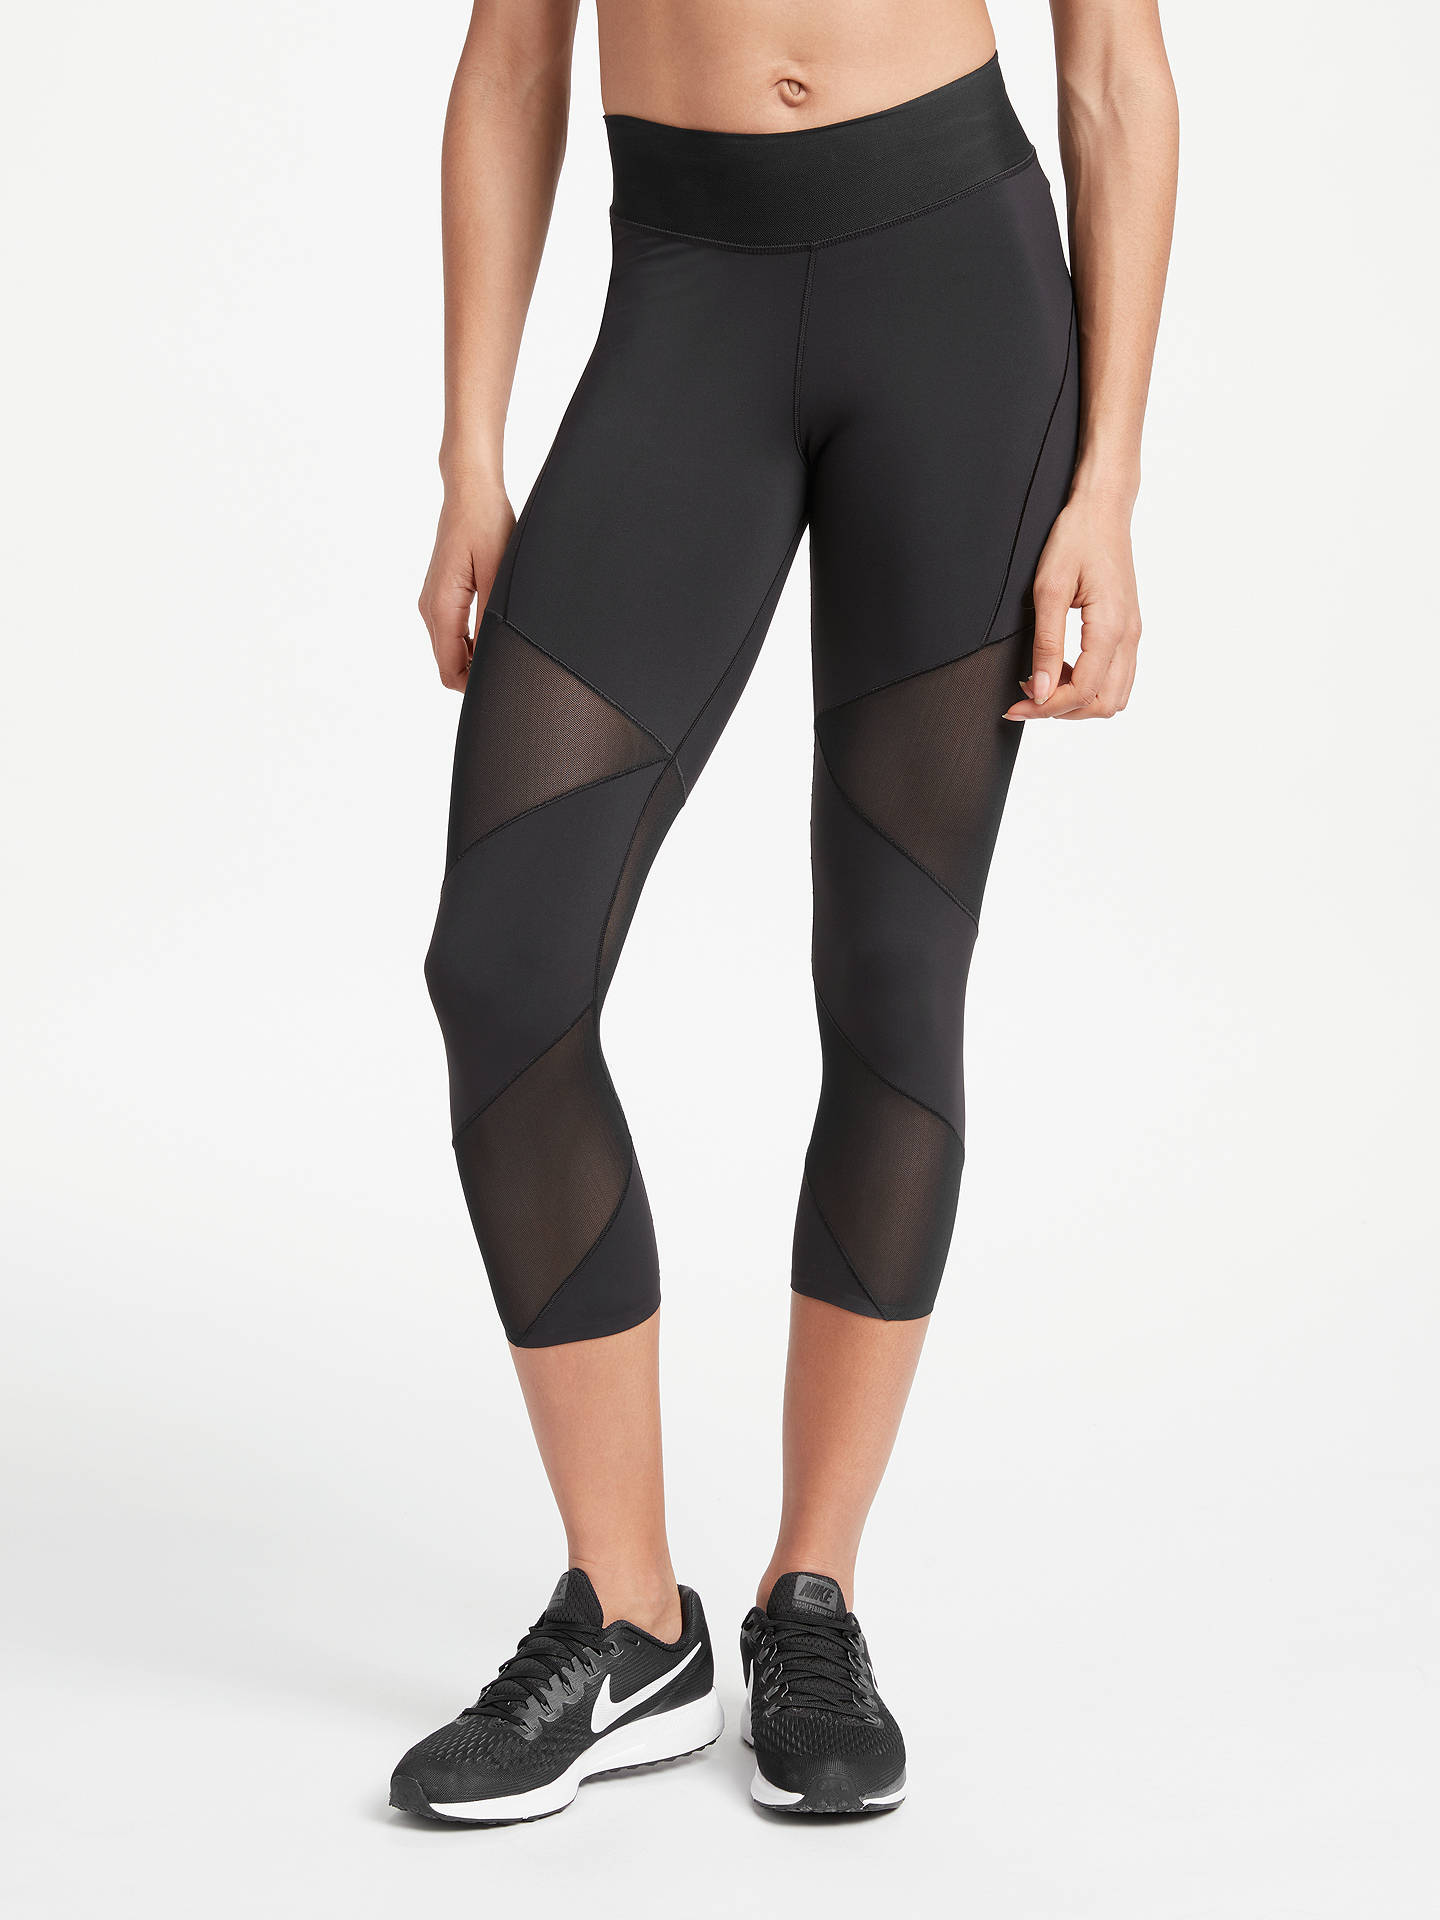 d8788c59c4dc3 Buy Nike Fly Lux Training Crops, Black, XS Online at johnlewis.com ...